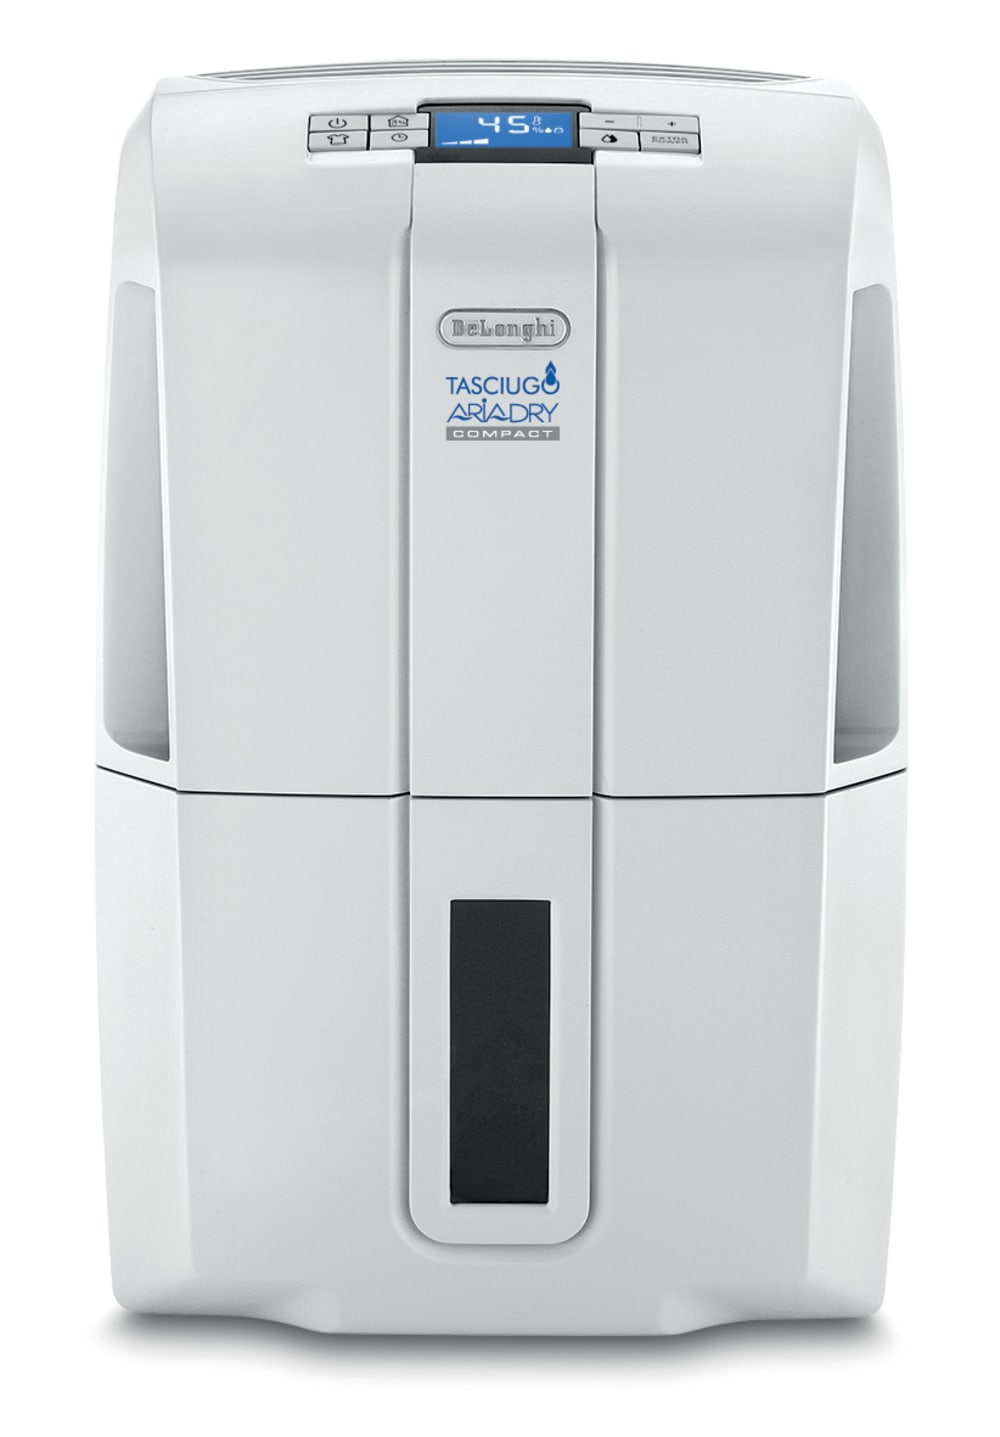 Delonghi Ariadry 30l Compact Dehumidifier Magness Benrow